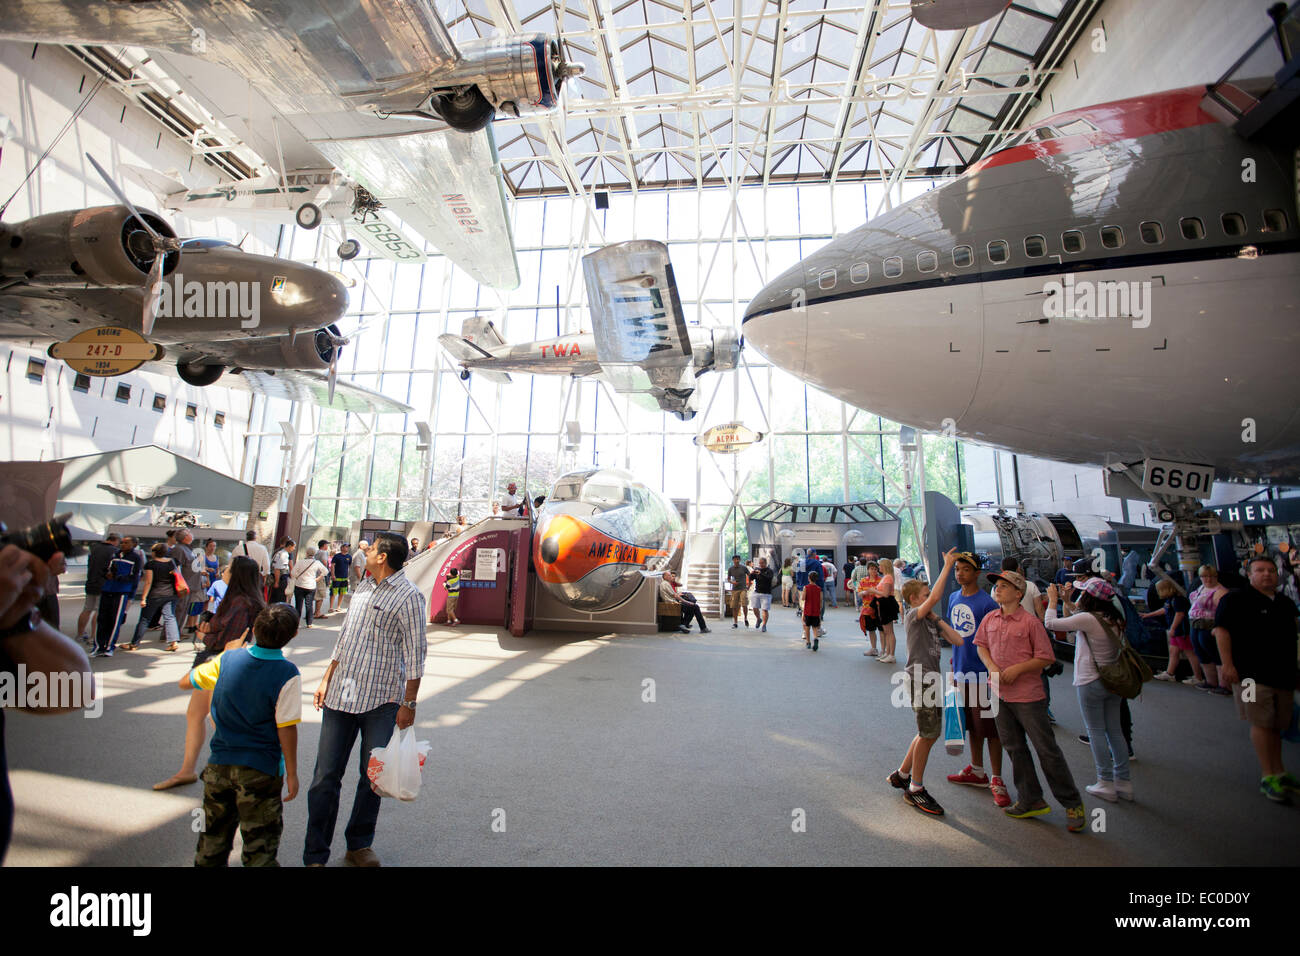 airplanes on display at the air and space museum in Washington DC - Stock Image